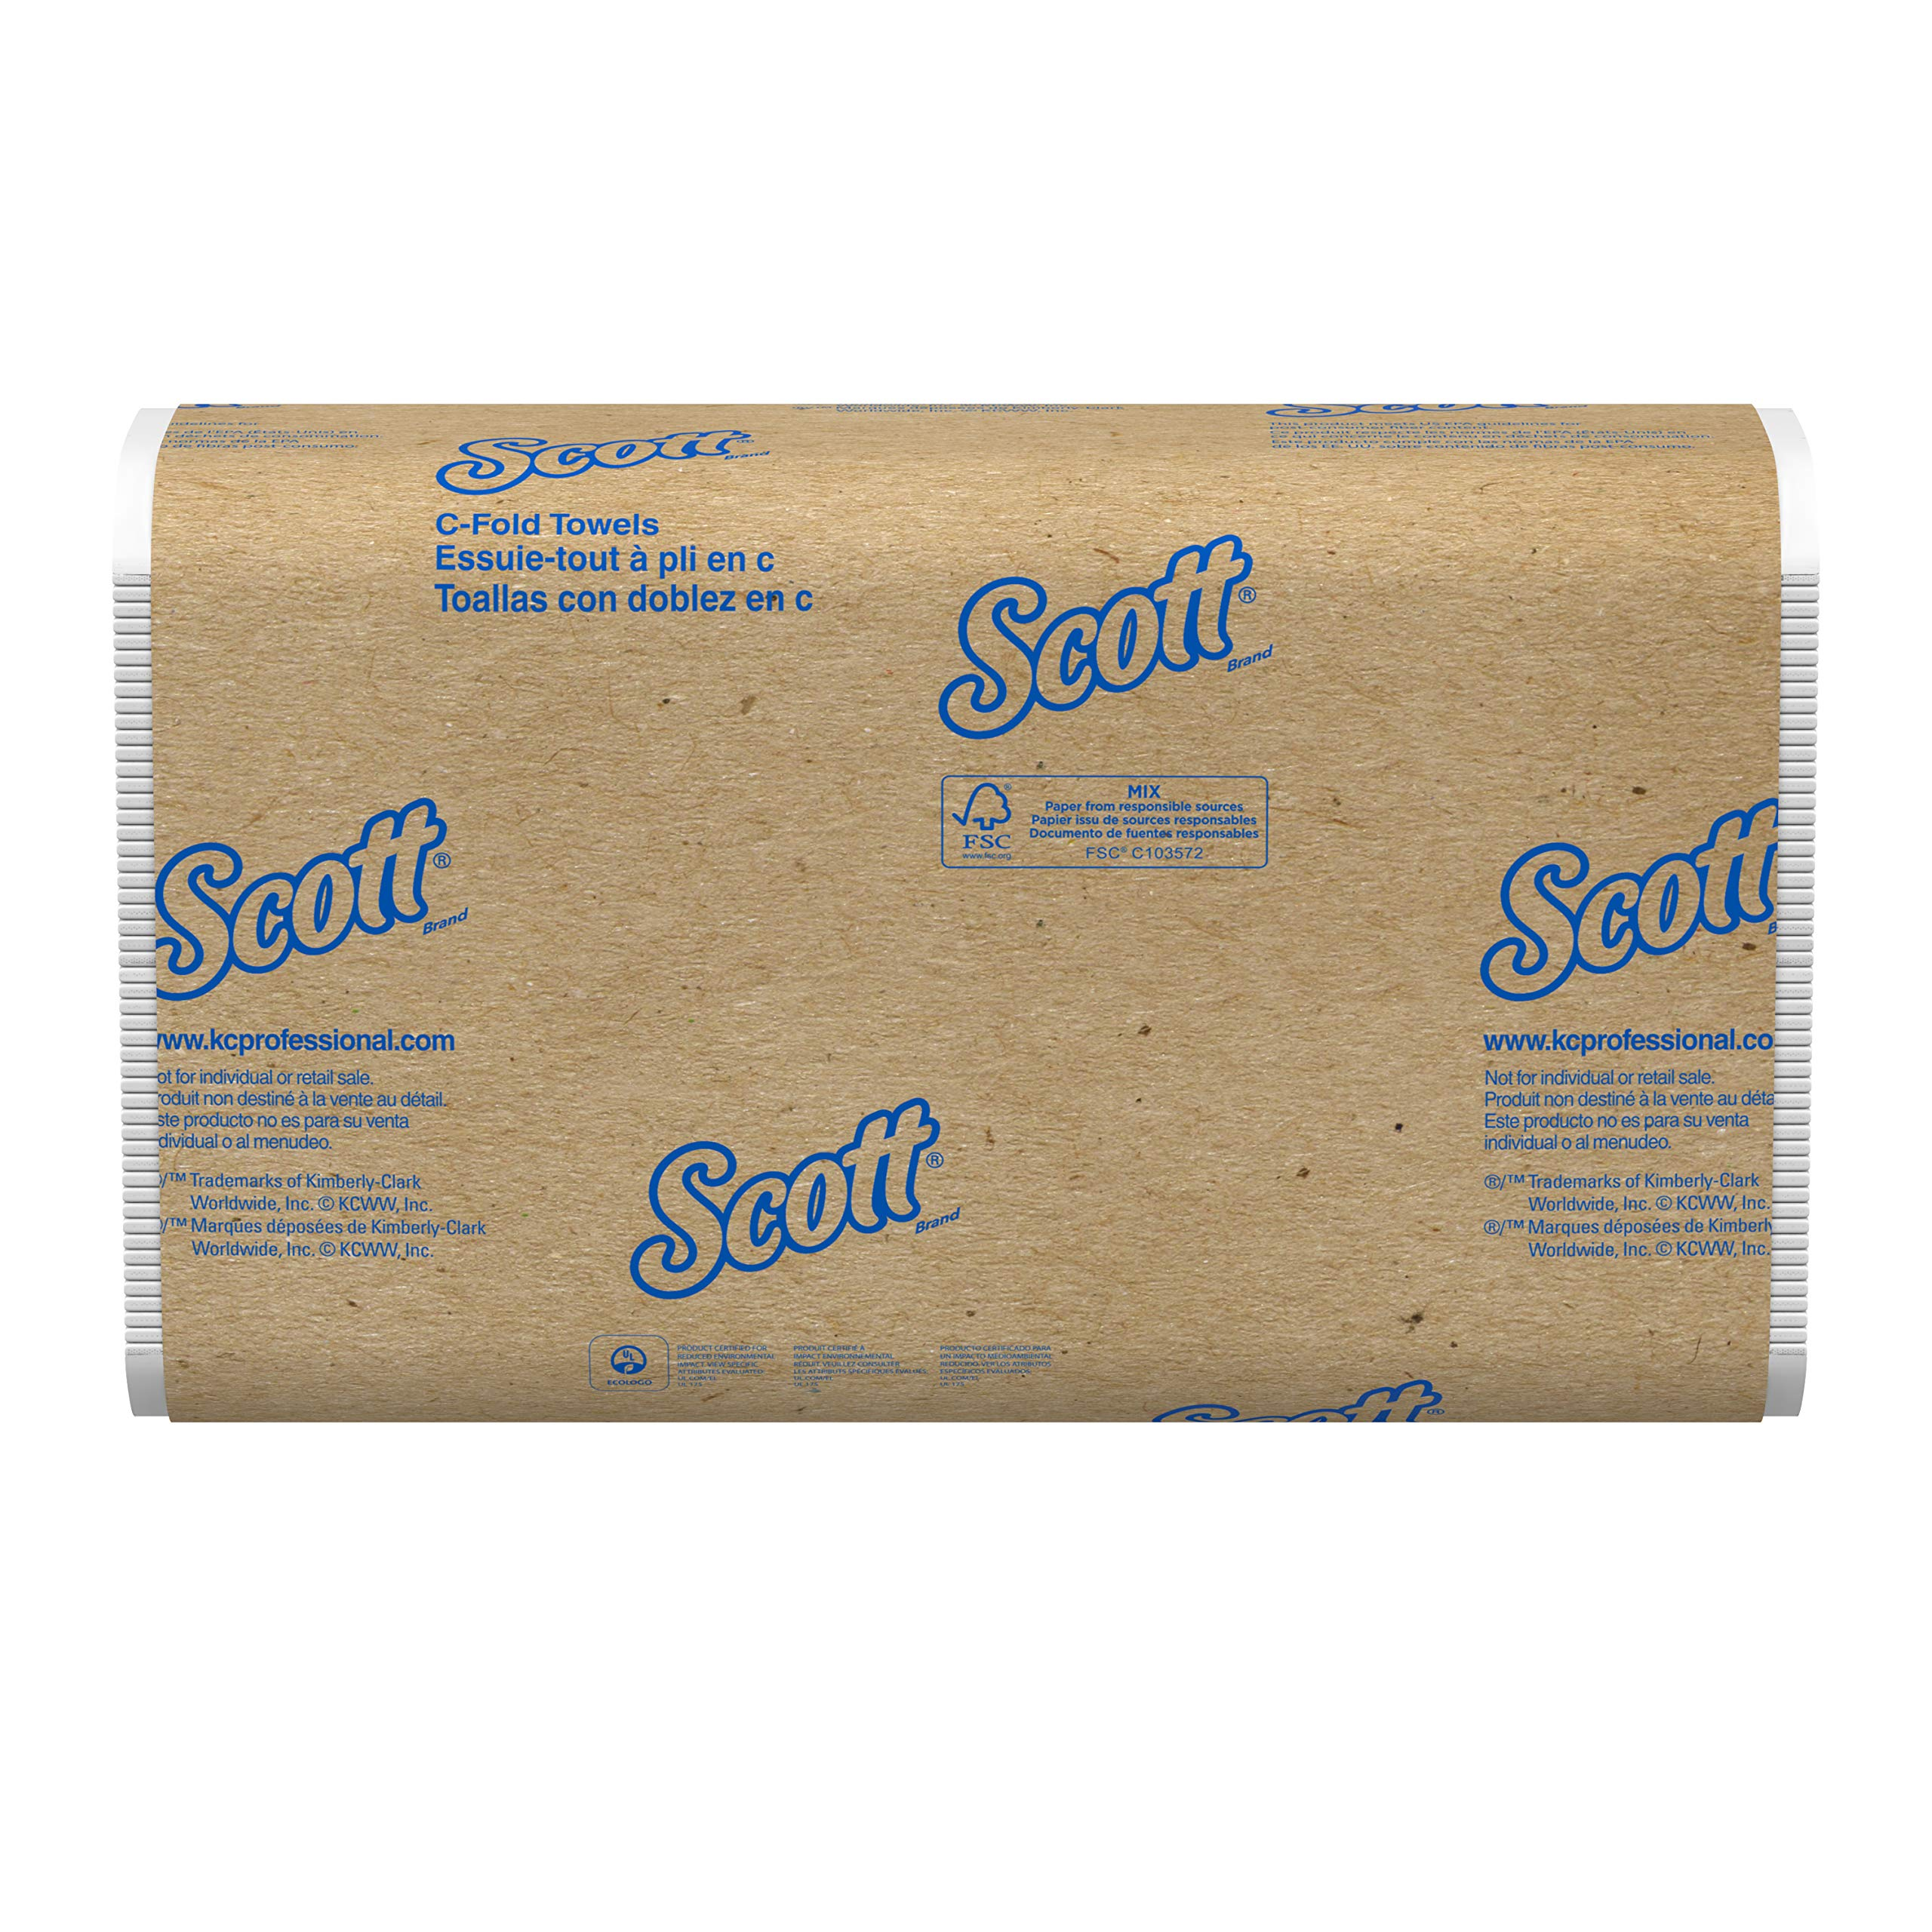 Scott Essential C-Fold Paper Towels (03623), Absorbency Pockets, White, 200 Towels/Pack, 9 Packs, 1,800 Towels/Convenience Case